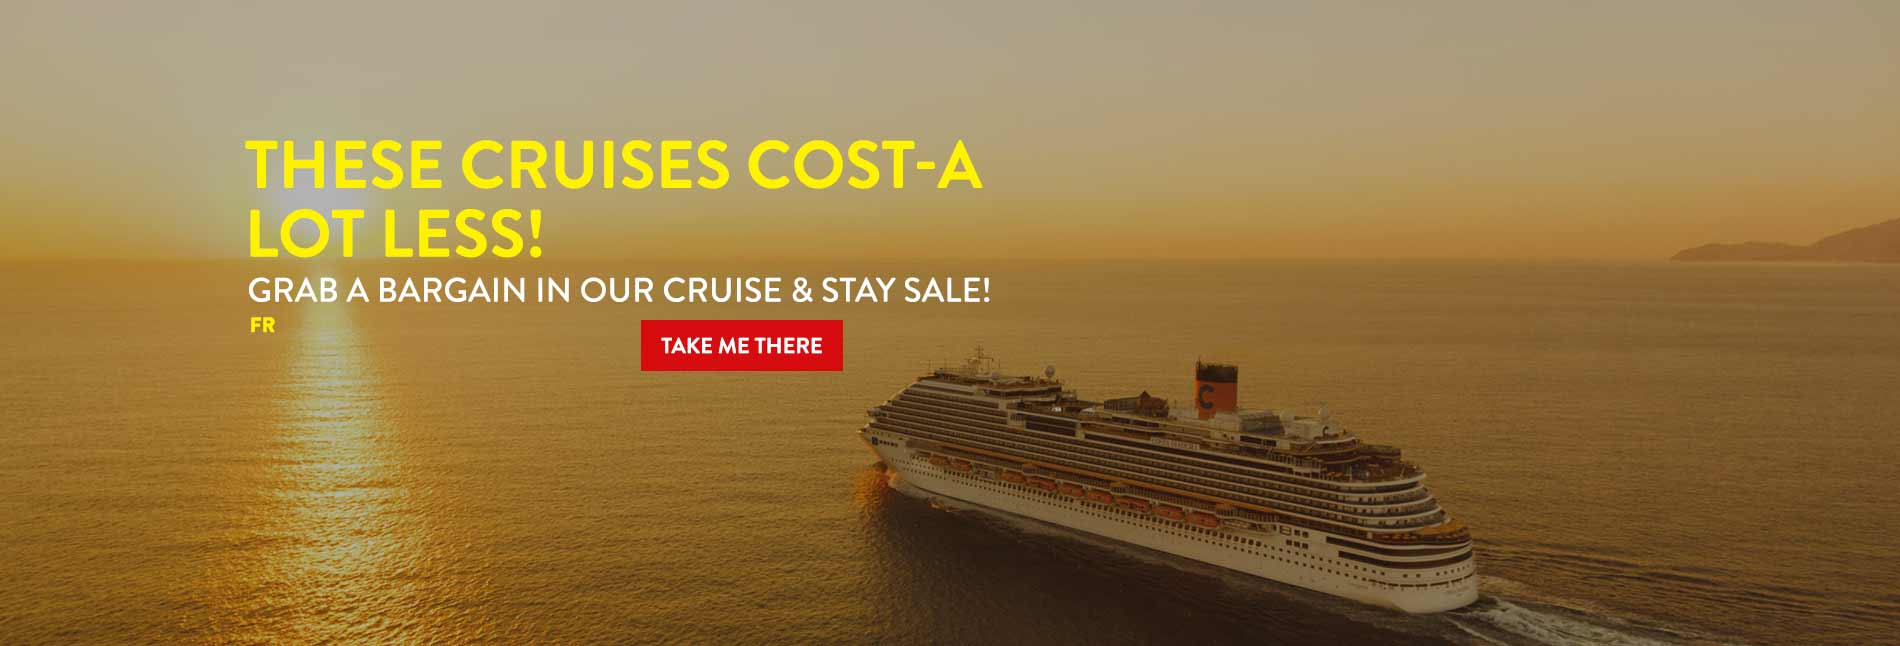 Cheap cruise deals february 2018